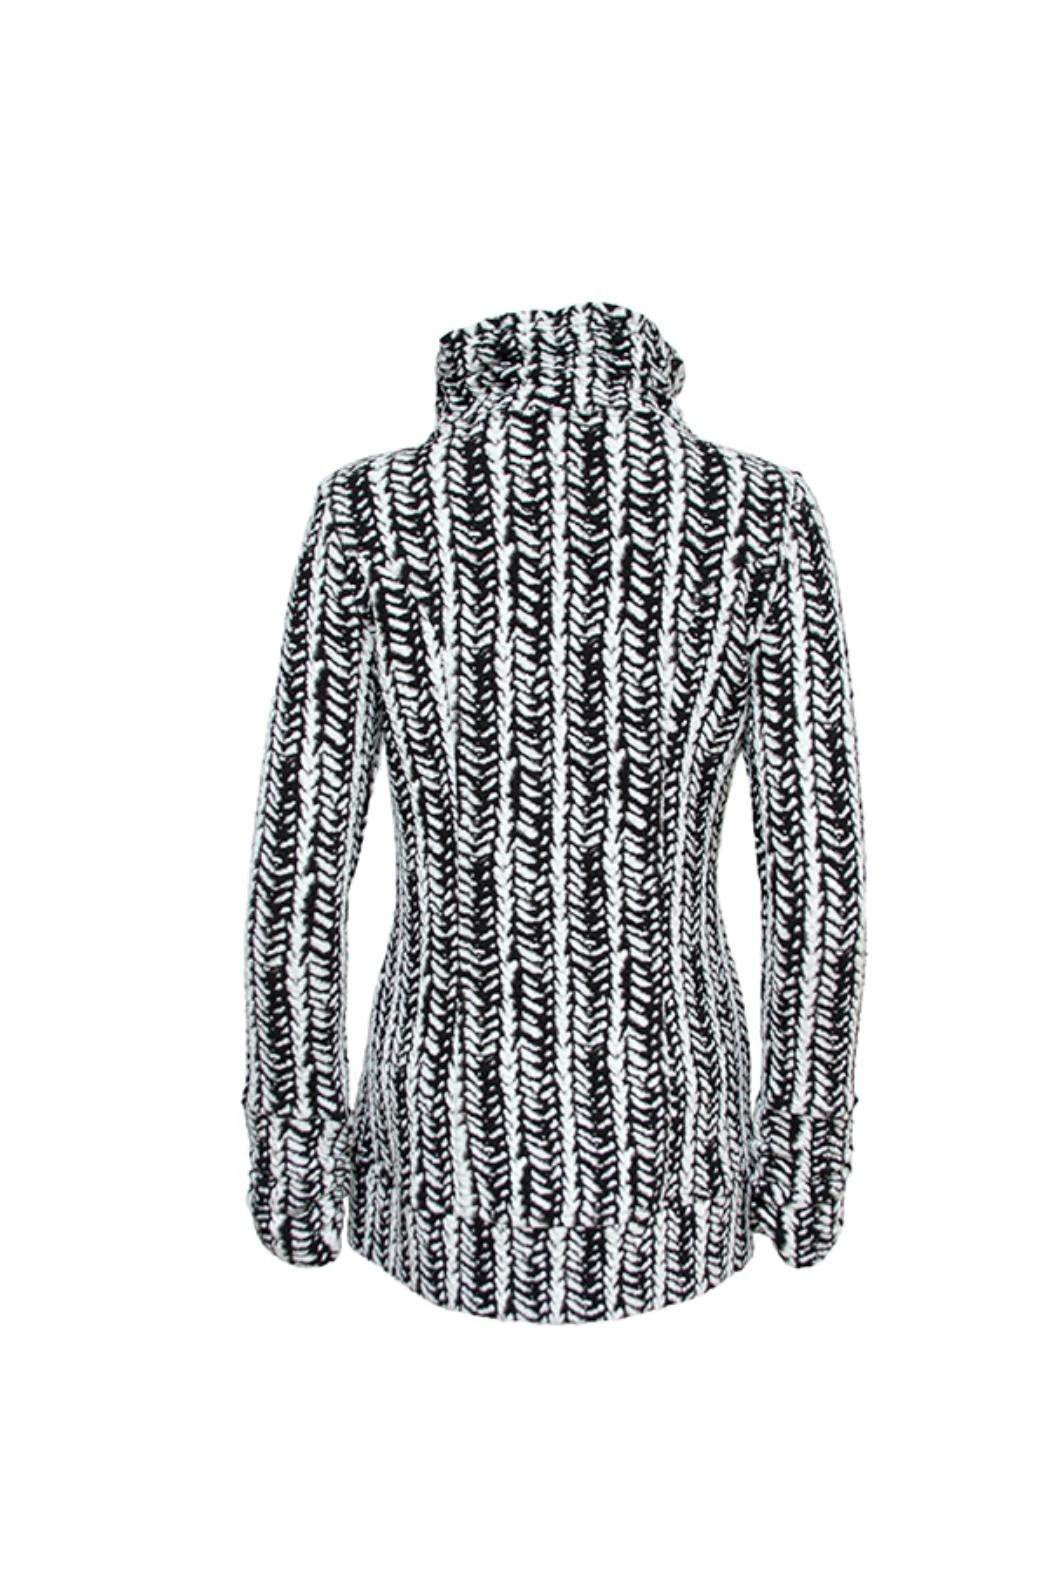 Tonia DeBellis Molly Cable Jacket - Front Full Image